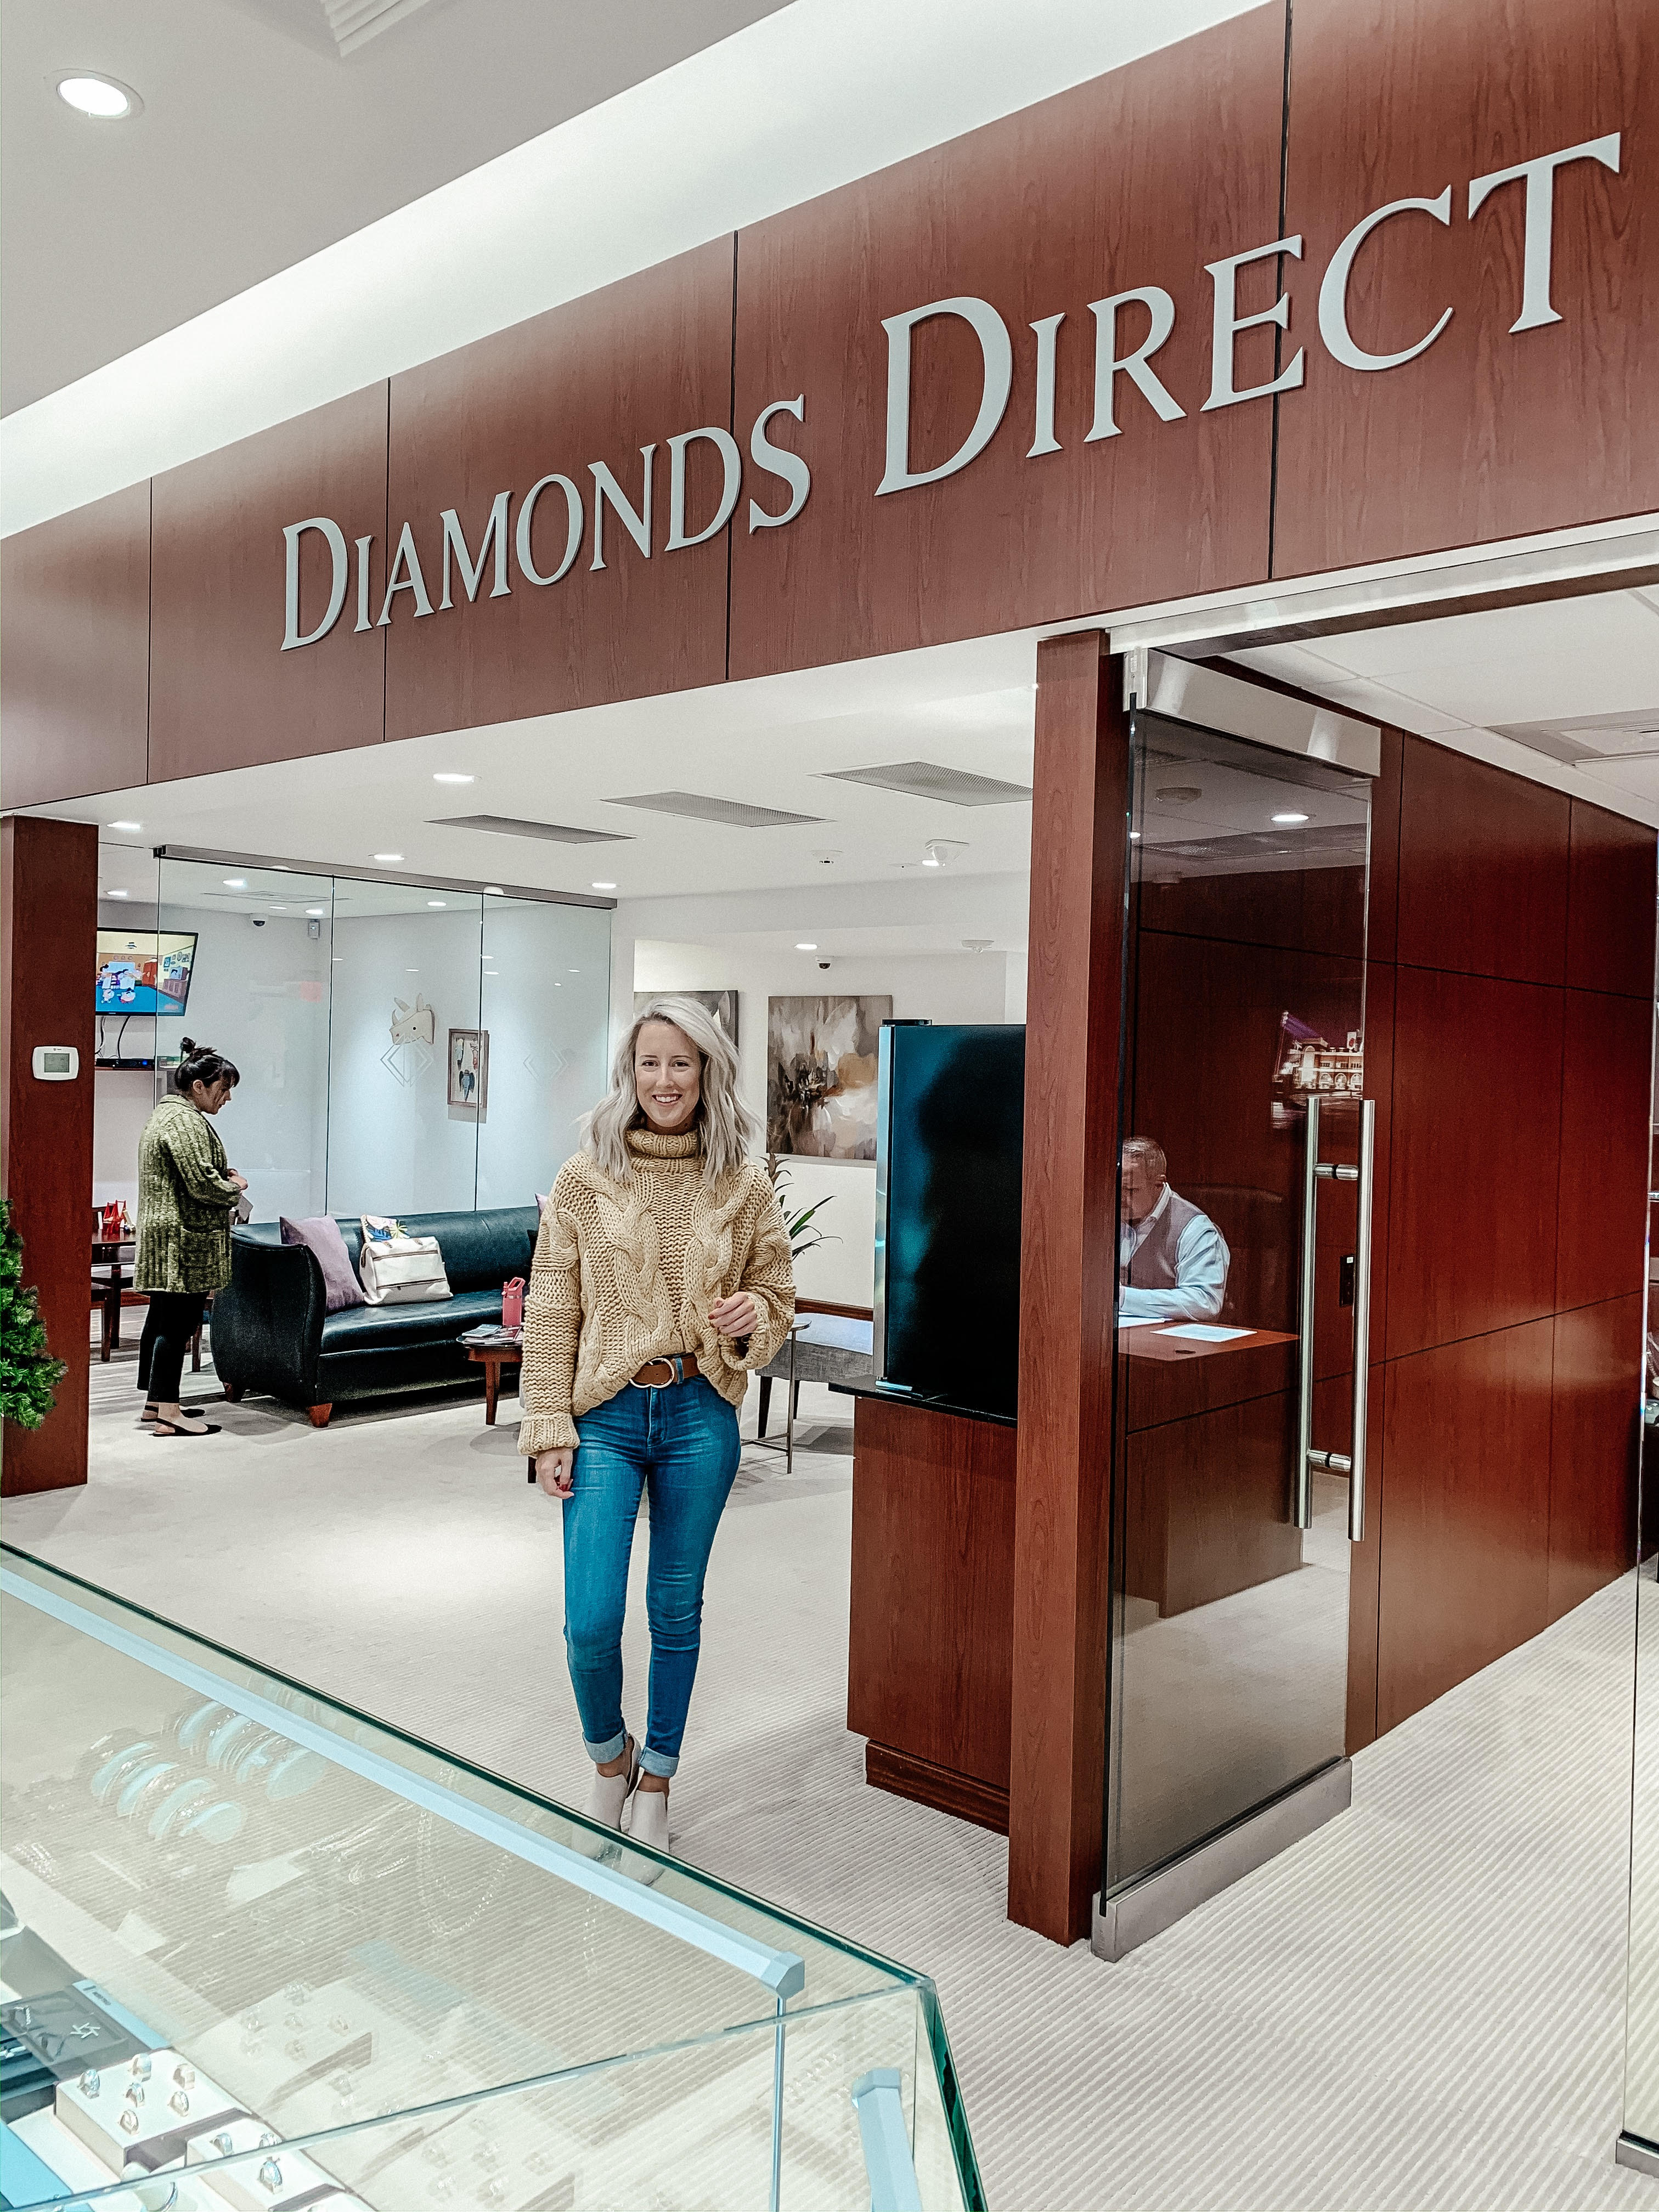 Diamonds Direct Holiday Event